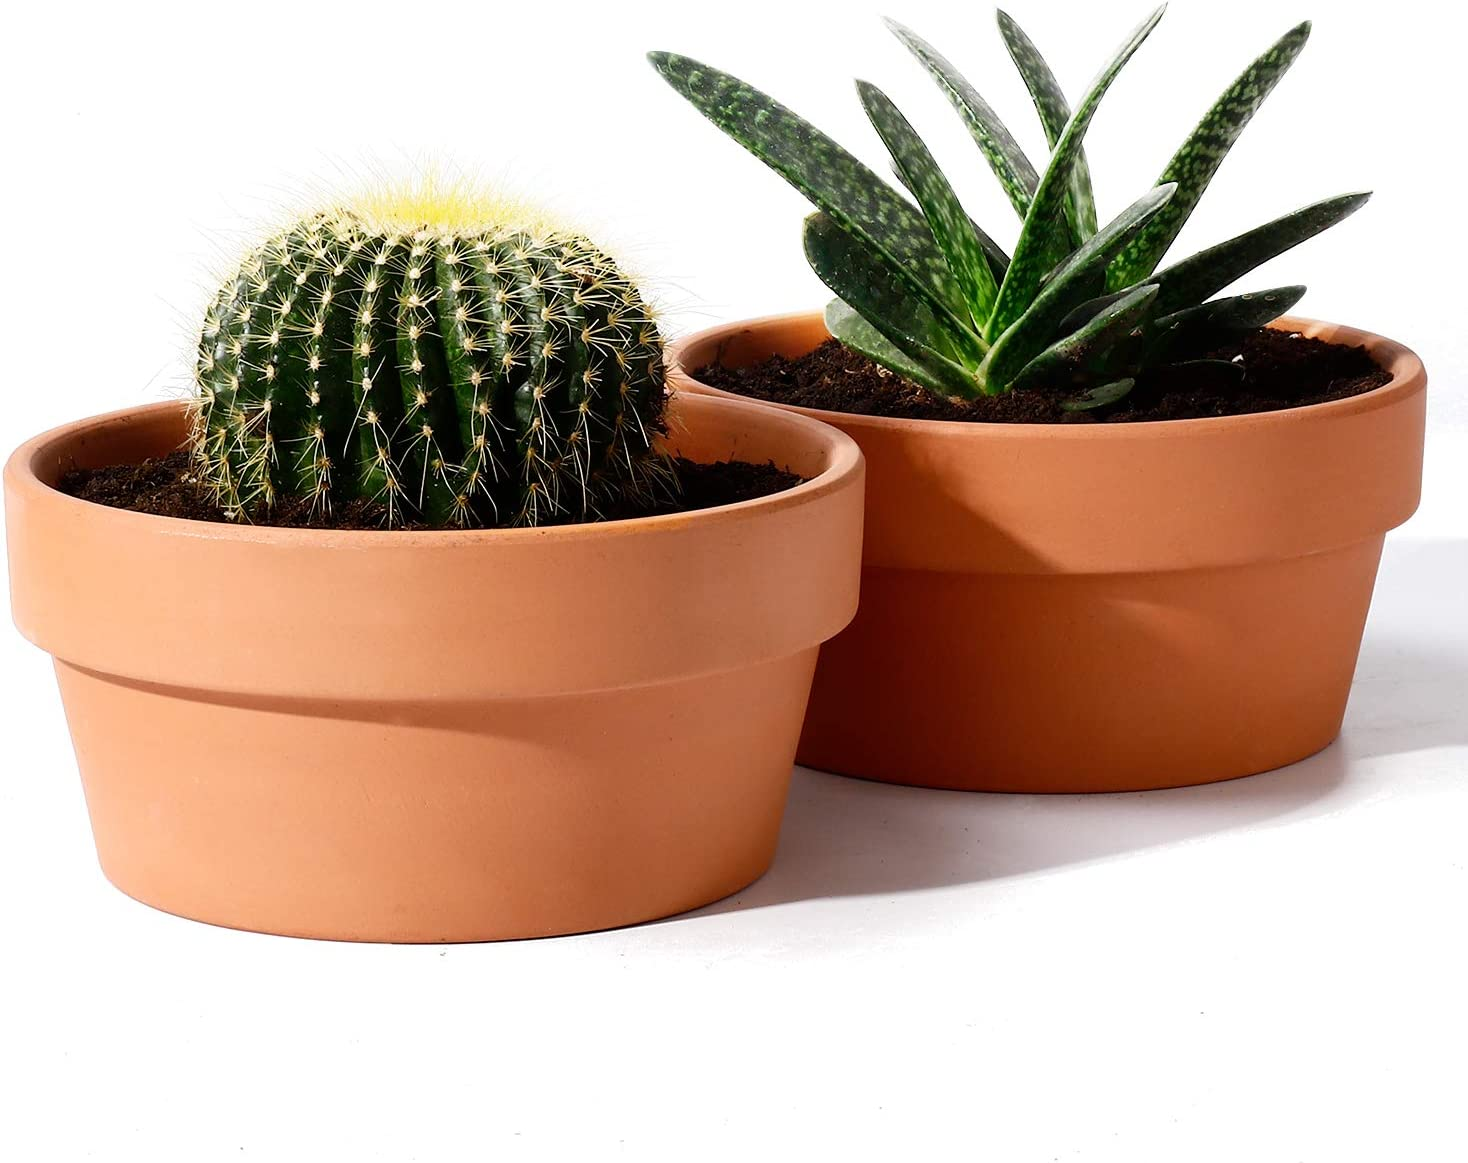 POTEY Terracotta Shallow Planters for Succulent - 6.1 Inch Cactus Plant Containers Indoor Garden Bonsai Pots with Drainage Hole - Set of 2, Unglazed